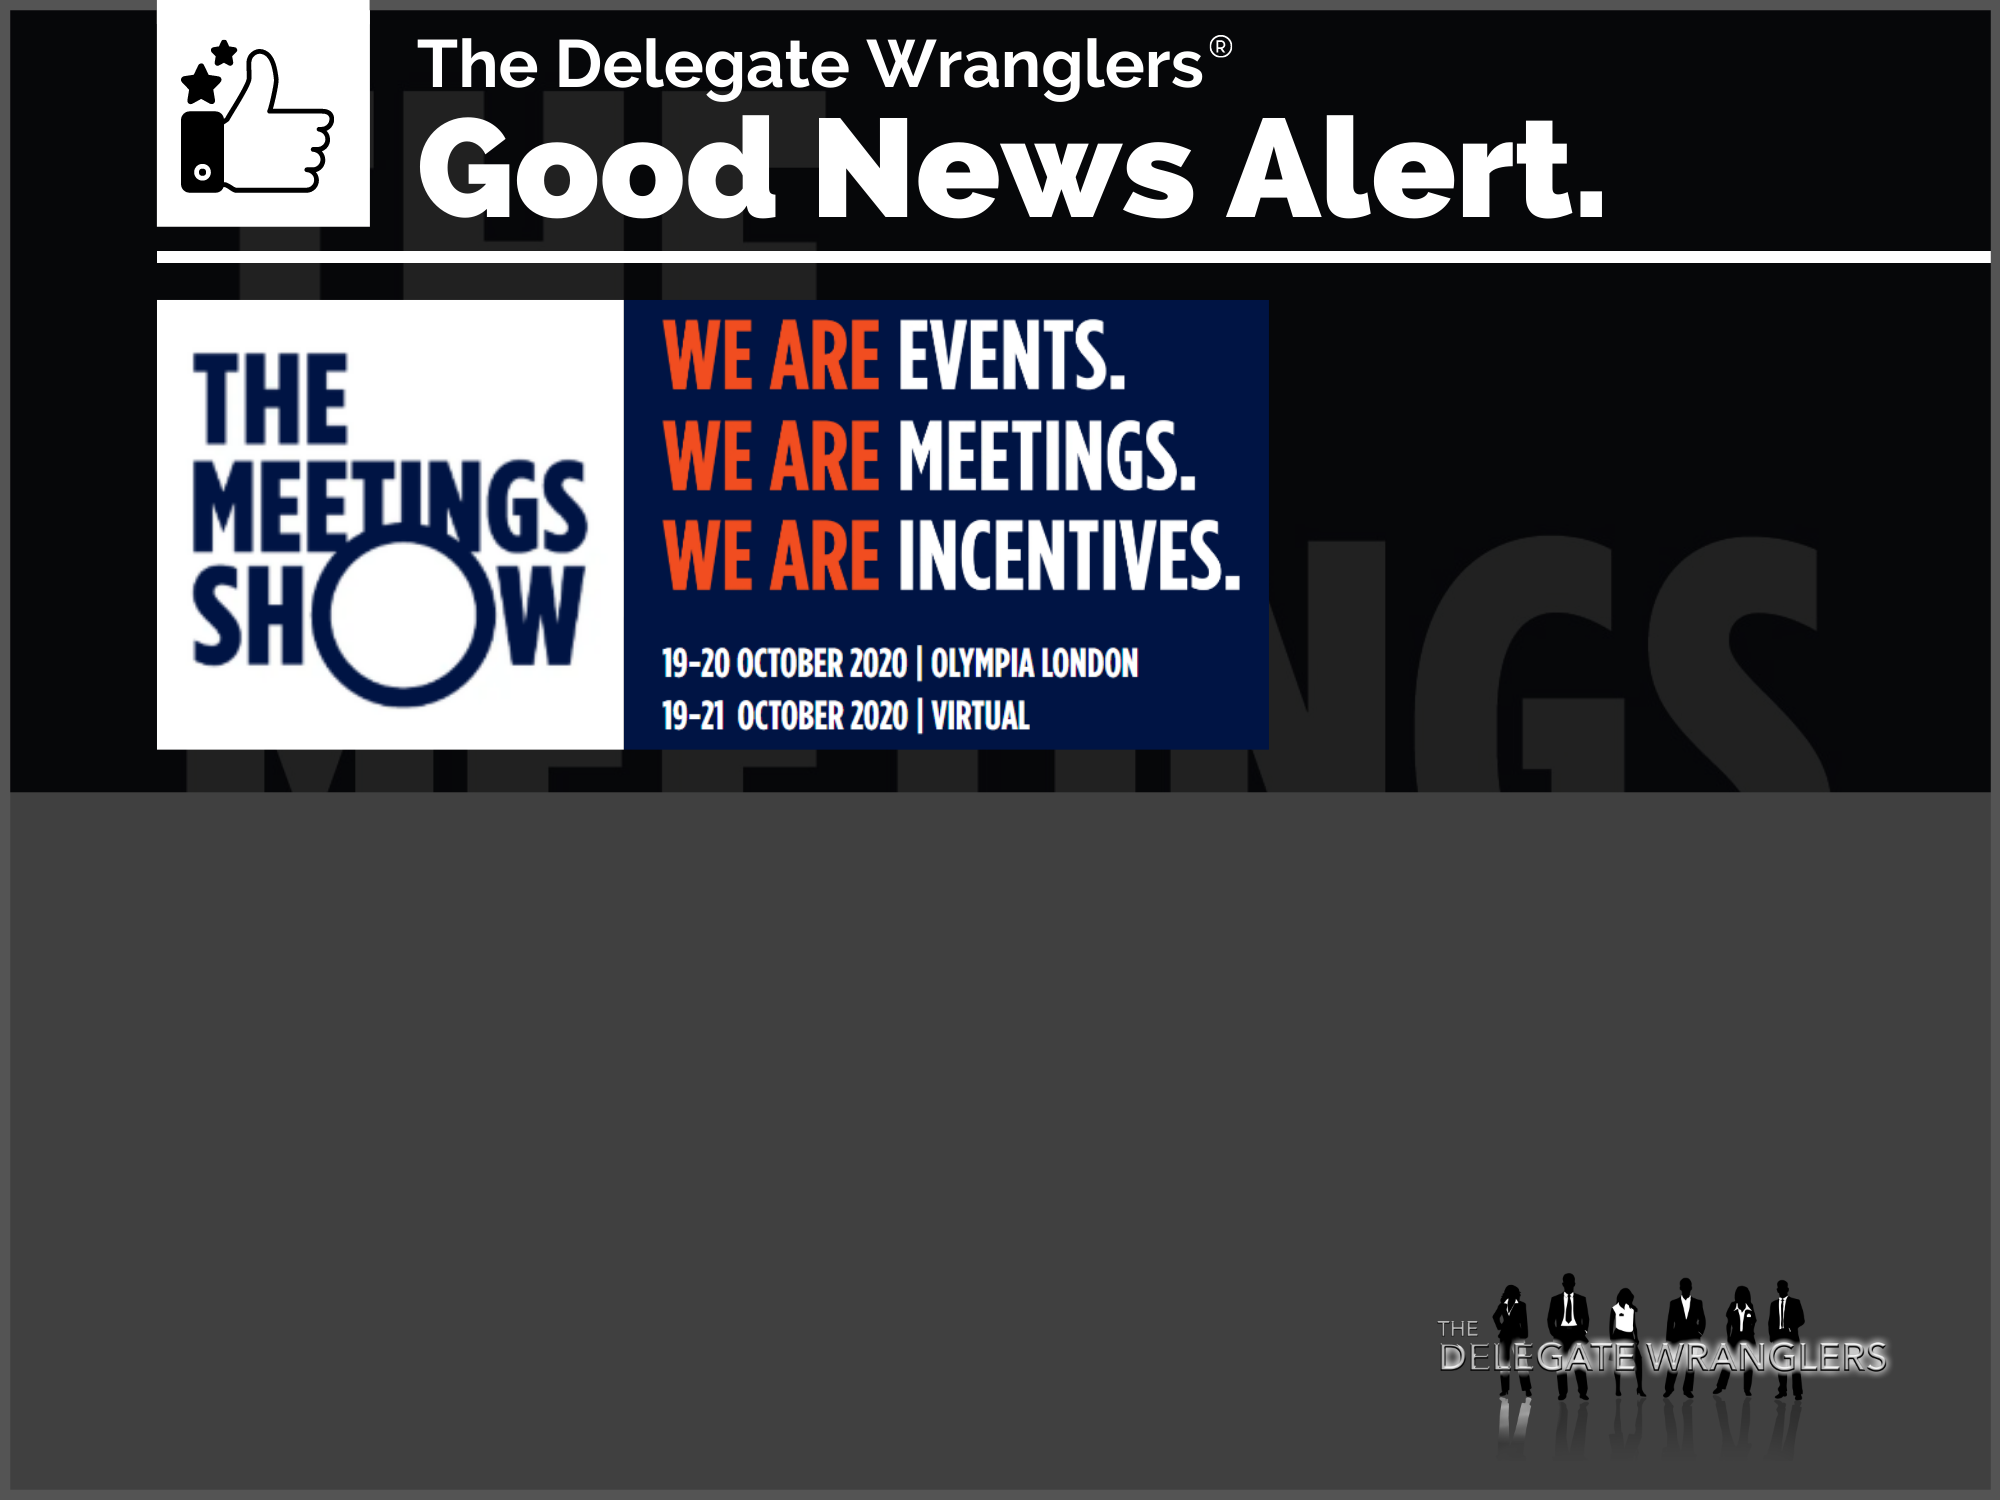 Registration opens for The Meetings Show